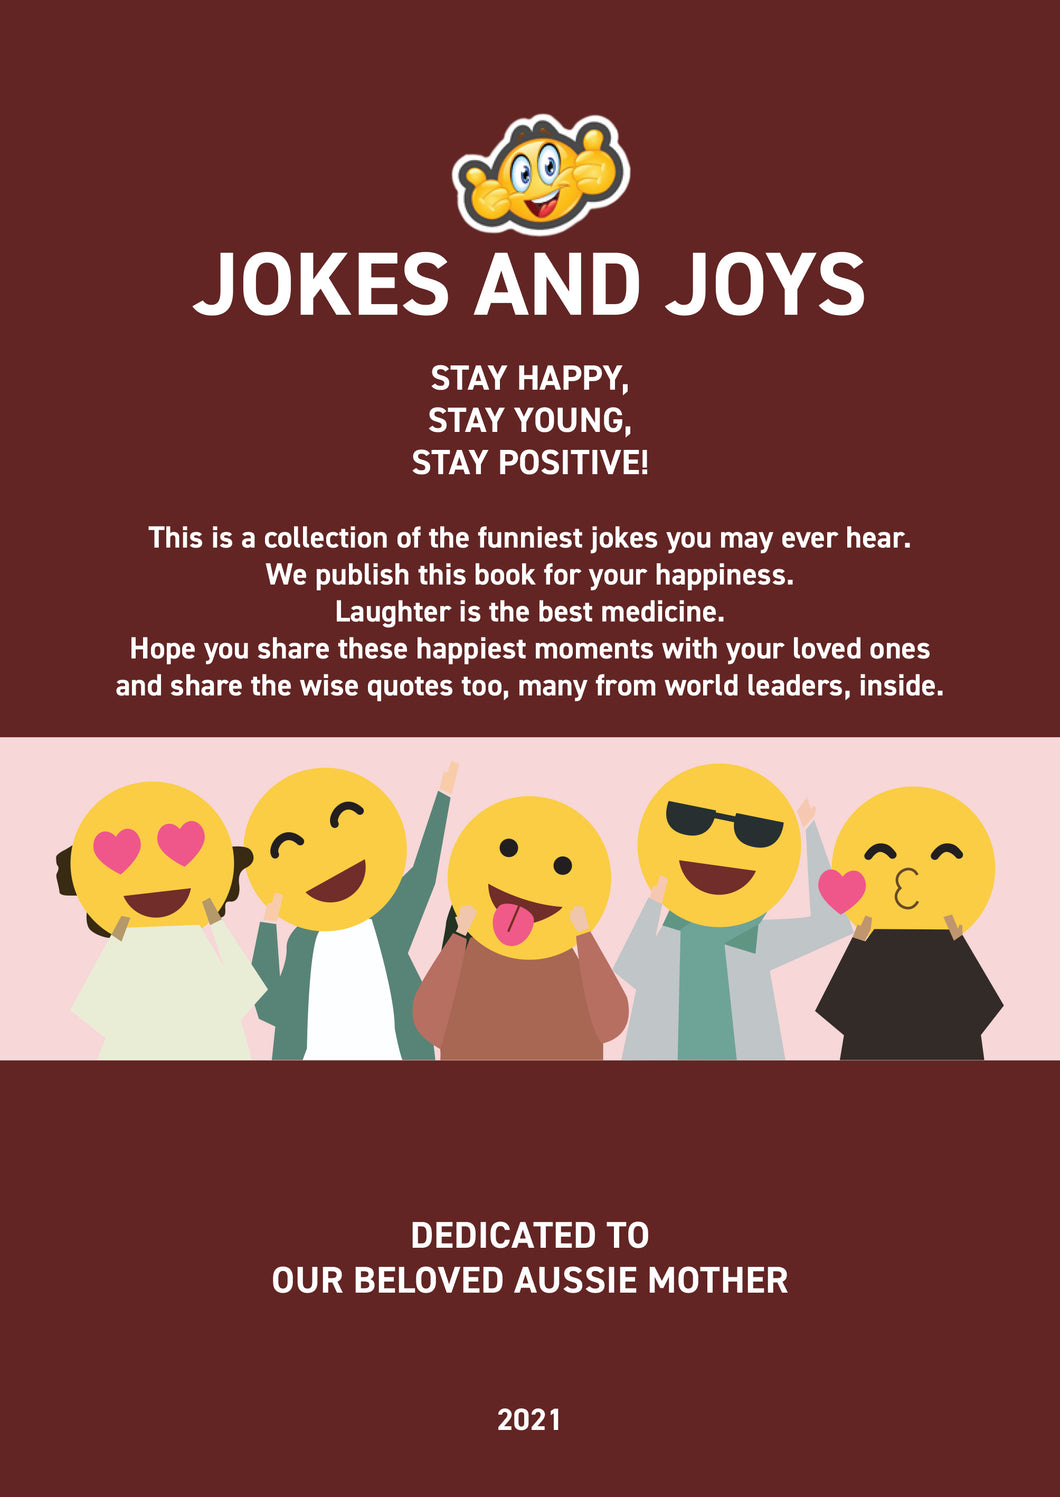 Jokes and Joys Book - Laughter is the Best Medicine